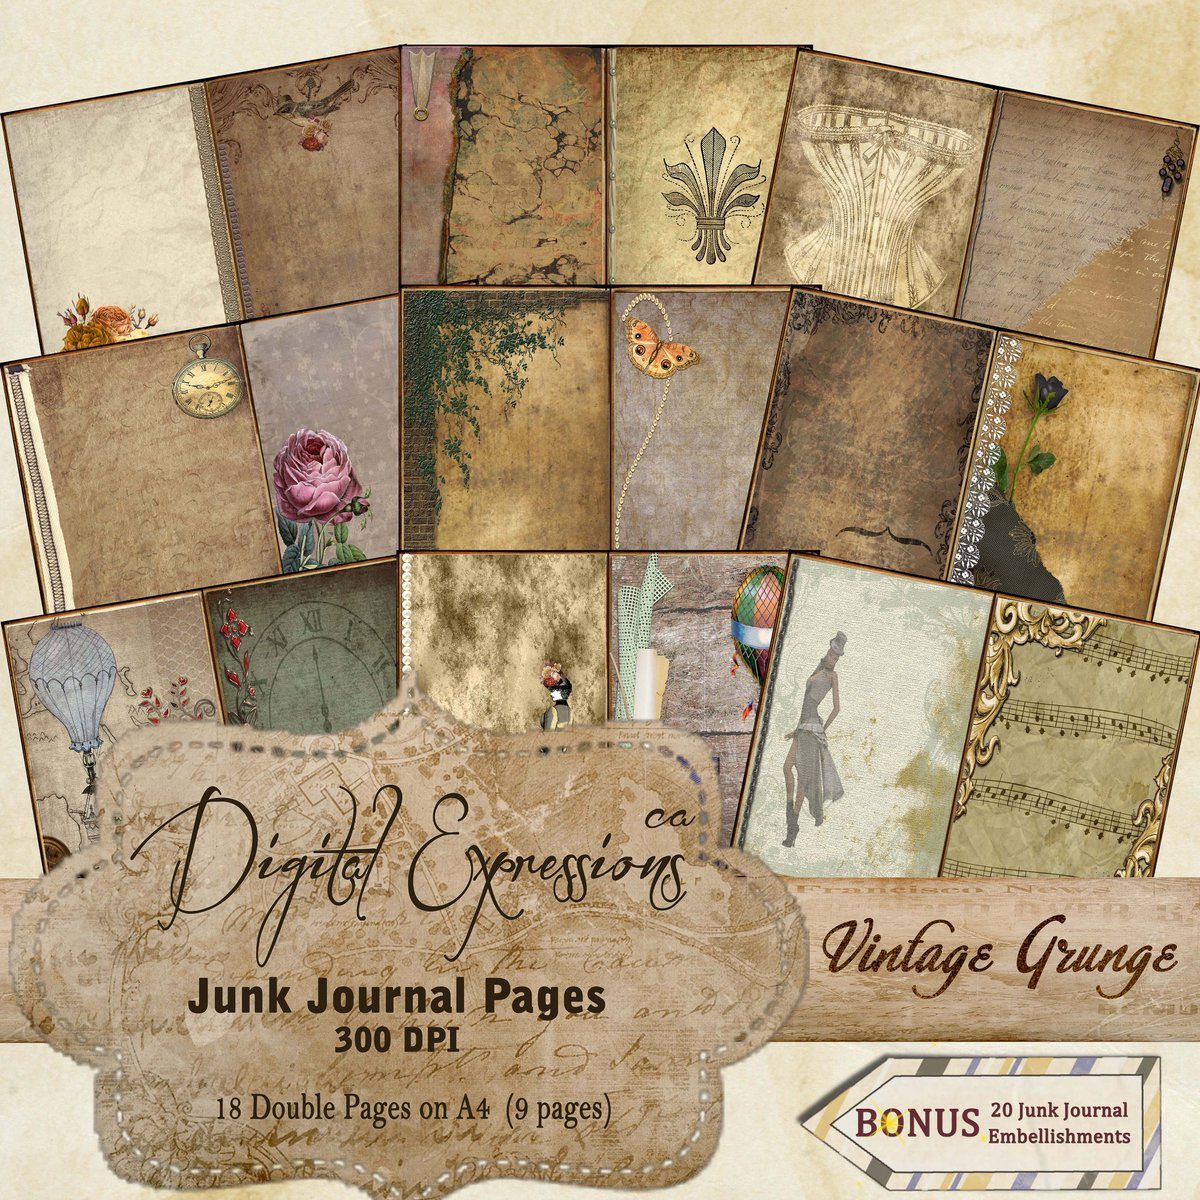 My #ETSY Shop http://ow.ly/APTt50vsZ9V  #JunkJournal #planner #ErinCondren #stickers #printable #scrapbooking #Digital #Paper packs #Bible #teacards #tags #Washitape #Steampunk -Trying to raise $25,000 for #Charity! Check for #Sale  50-60% off #Commercial Use TY for your supportpic.twitter.com/VYDOmOIUT2